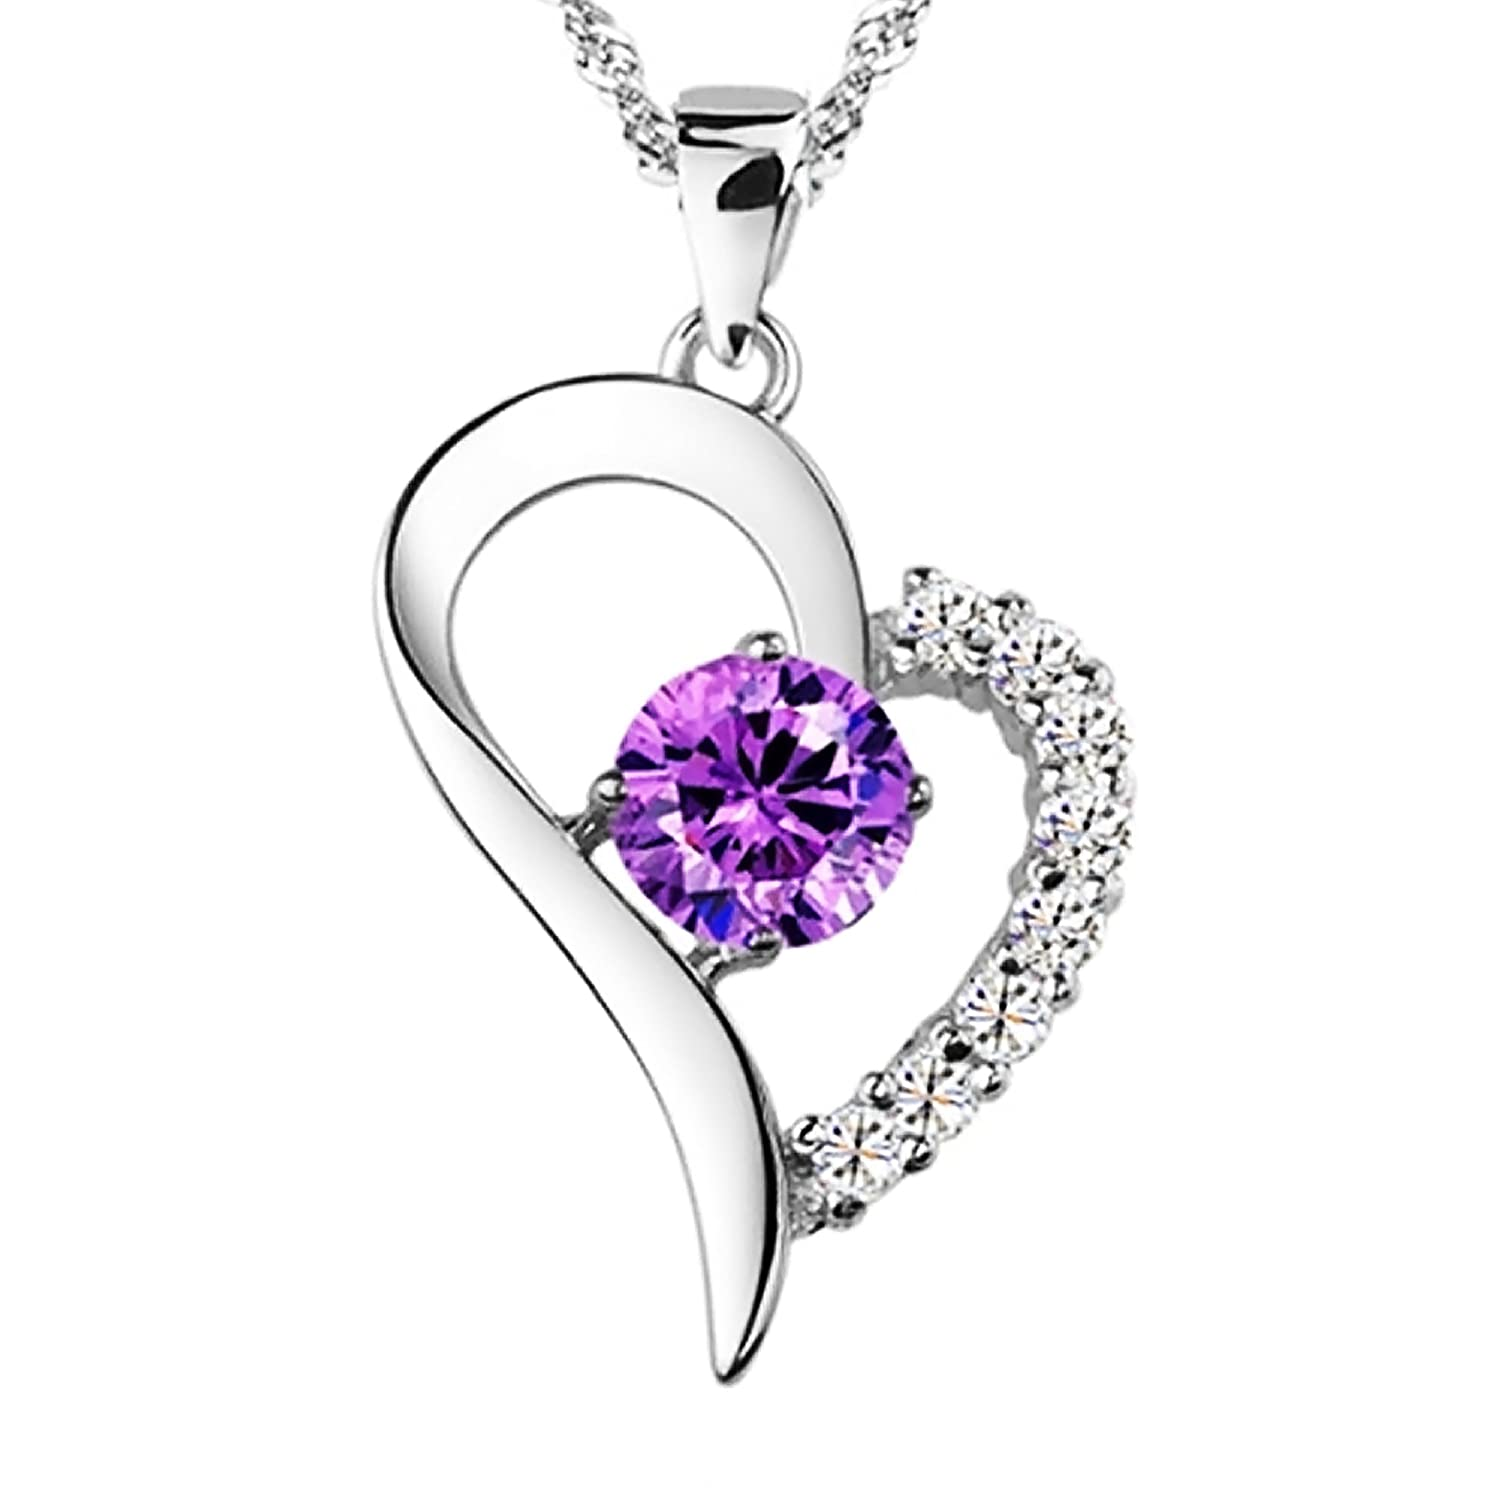 heart detail pendant necklace amethyst shape buy hot womens product purple crystal rocks chain sale shaped